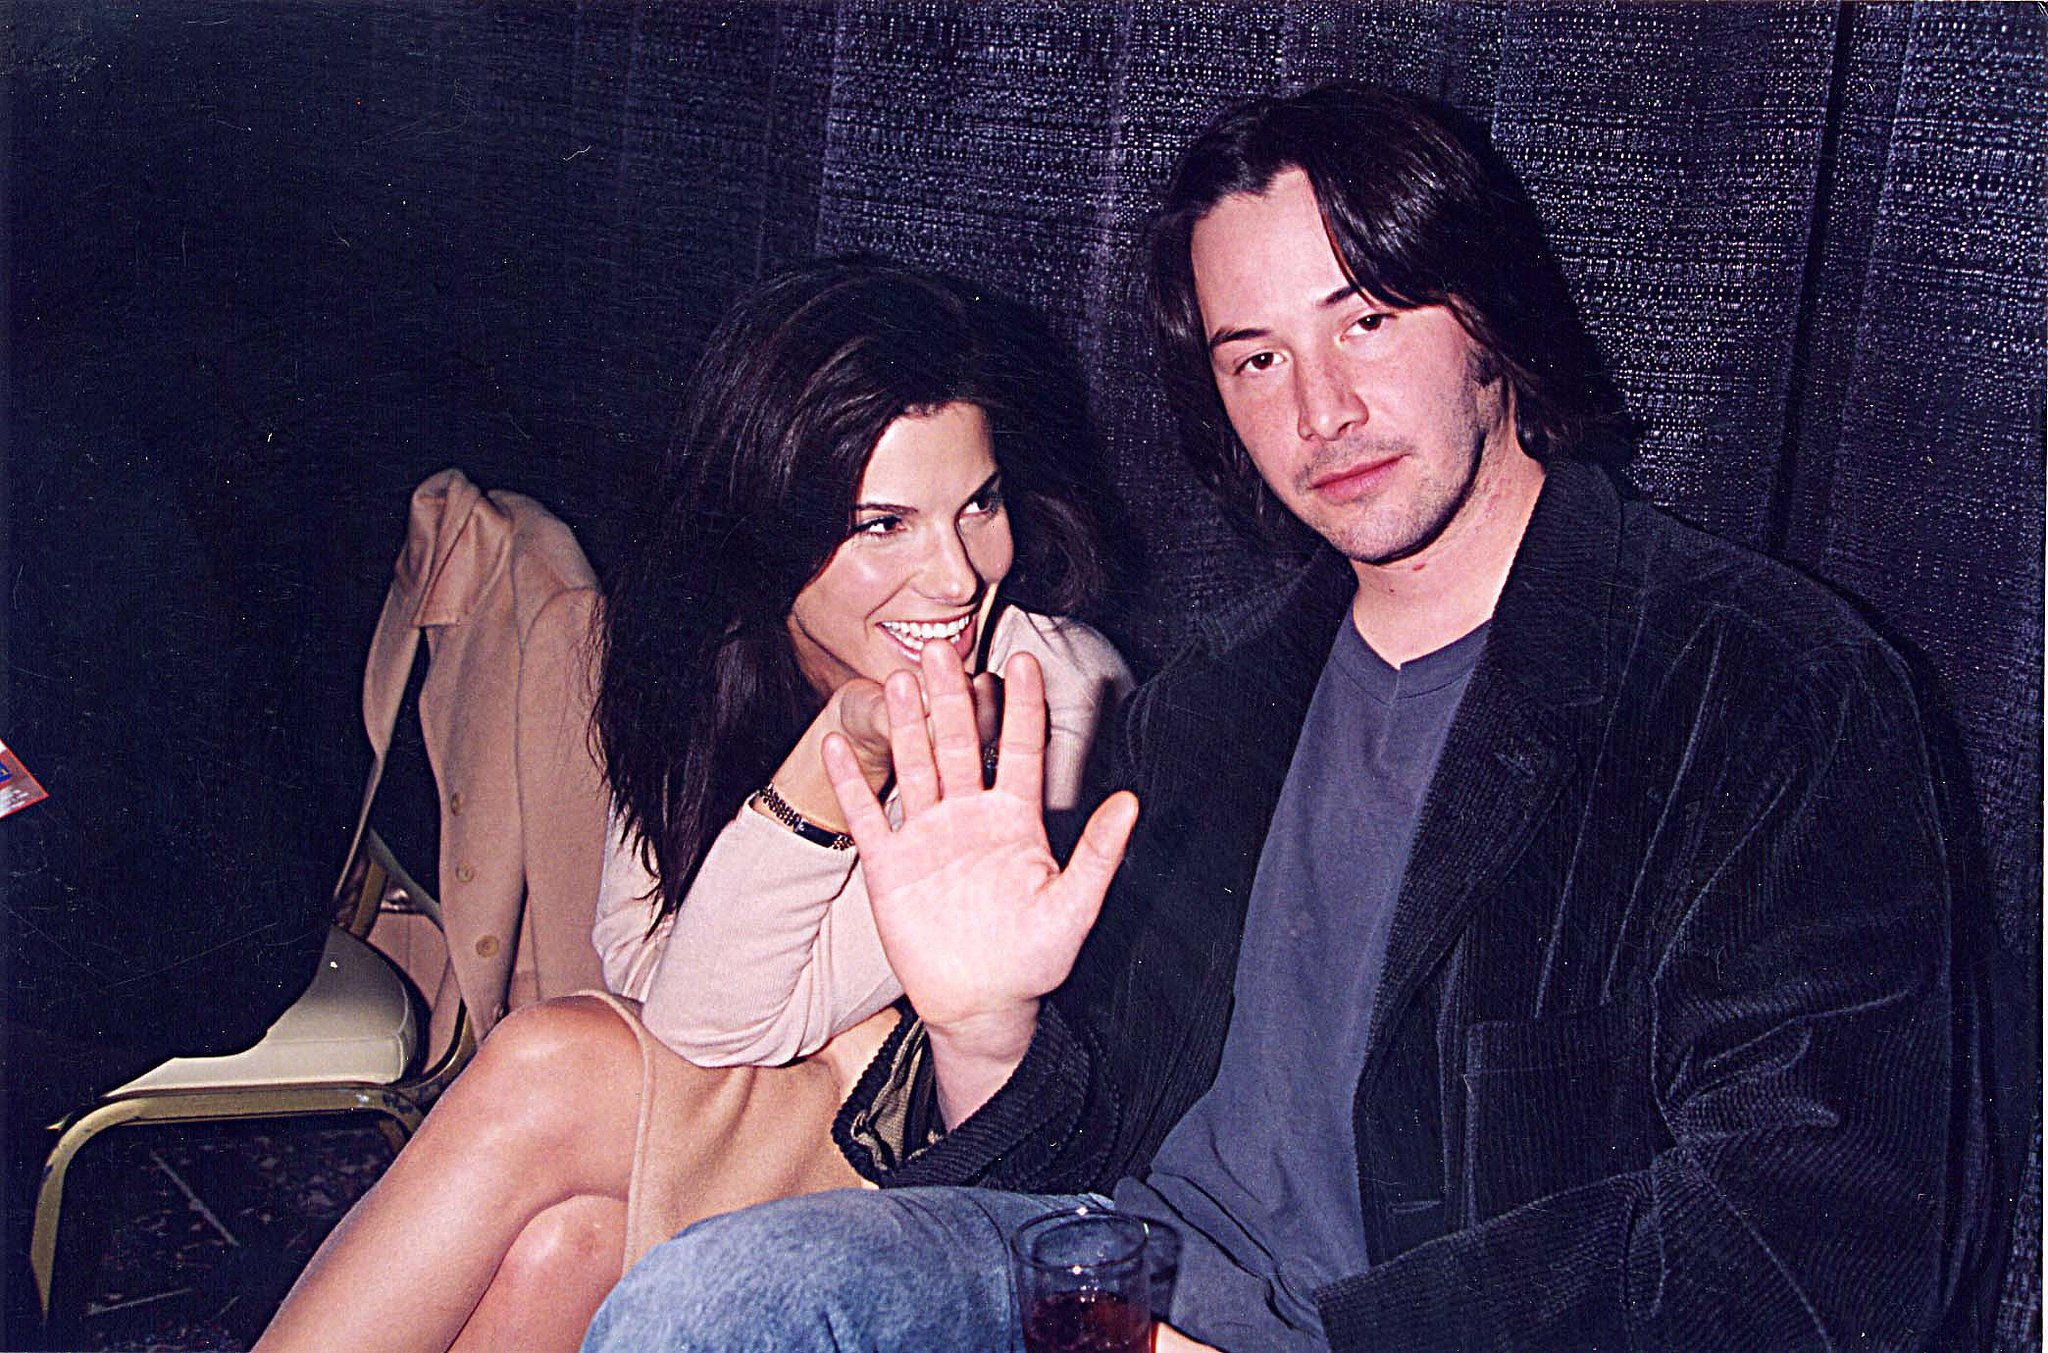 Keanu Reeves? Sandra-Bullock-Keanu-Reeves-were-all-smiles-September-1996